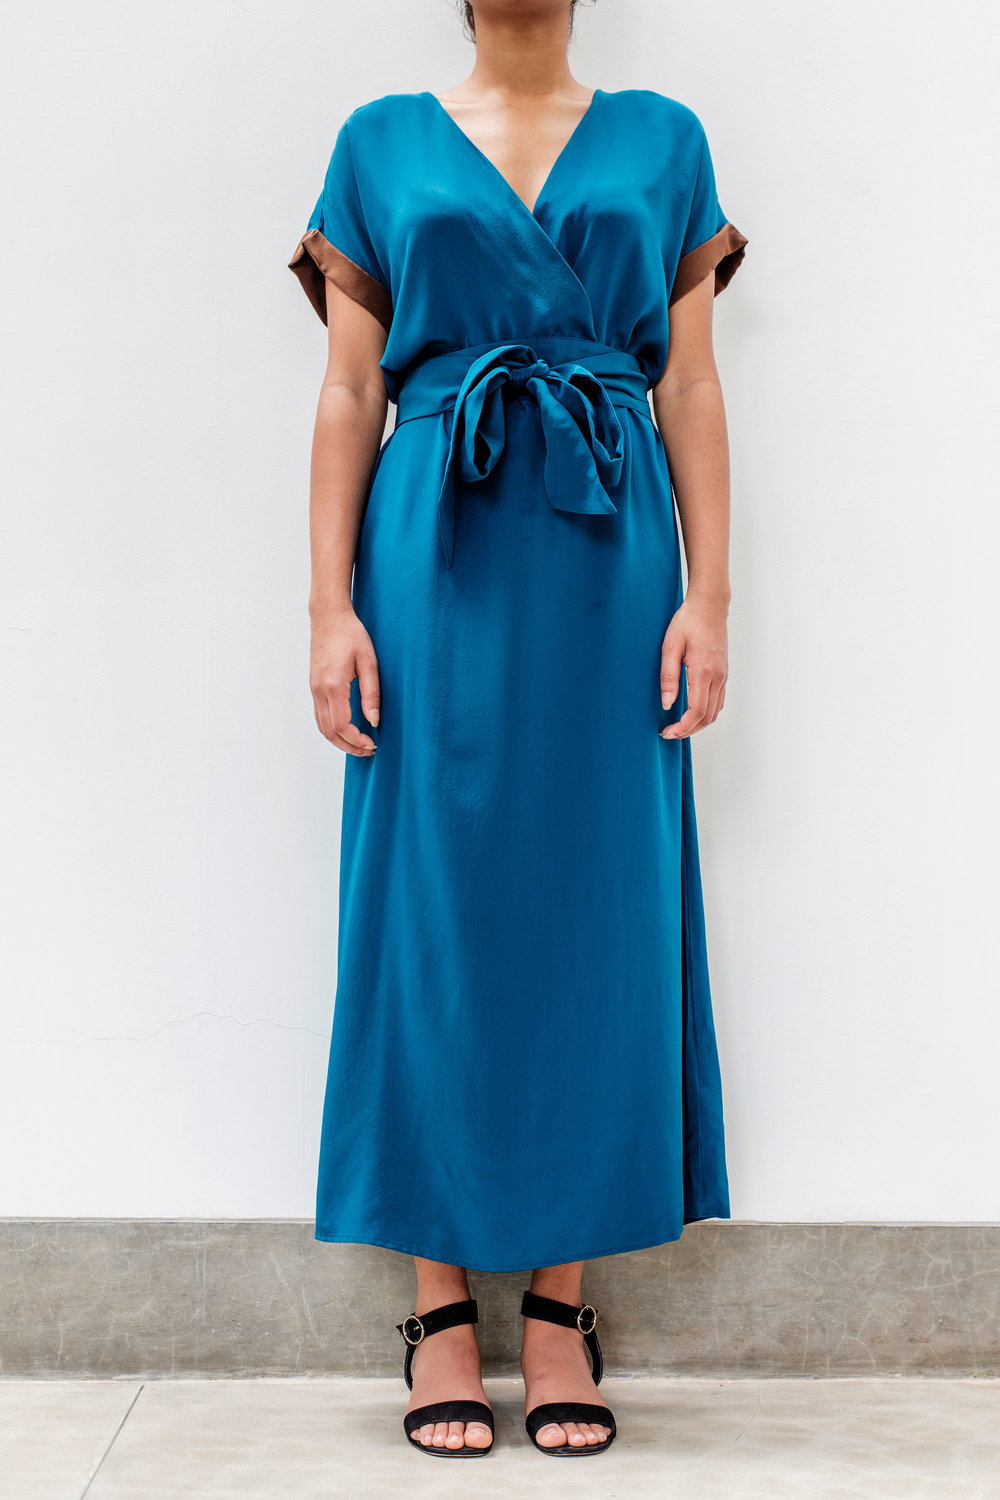 SHAANA-WRAP-DRESS---TEAL.jpg